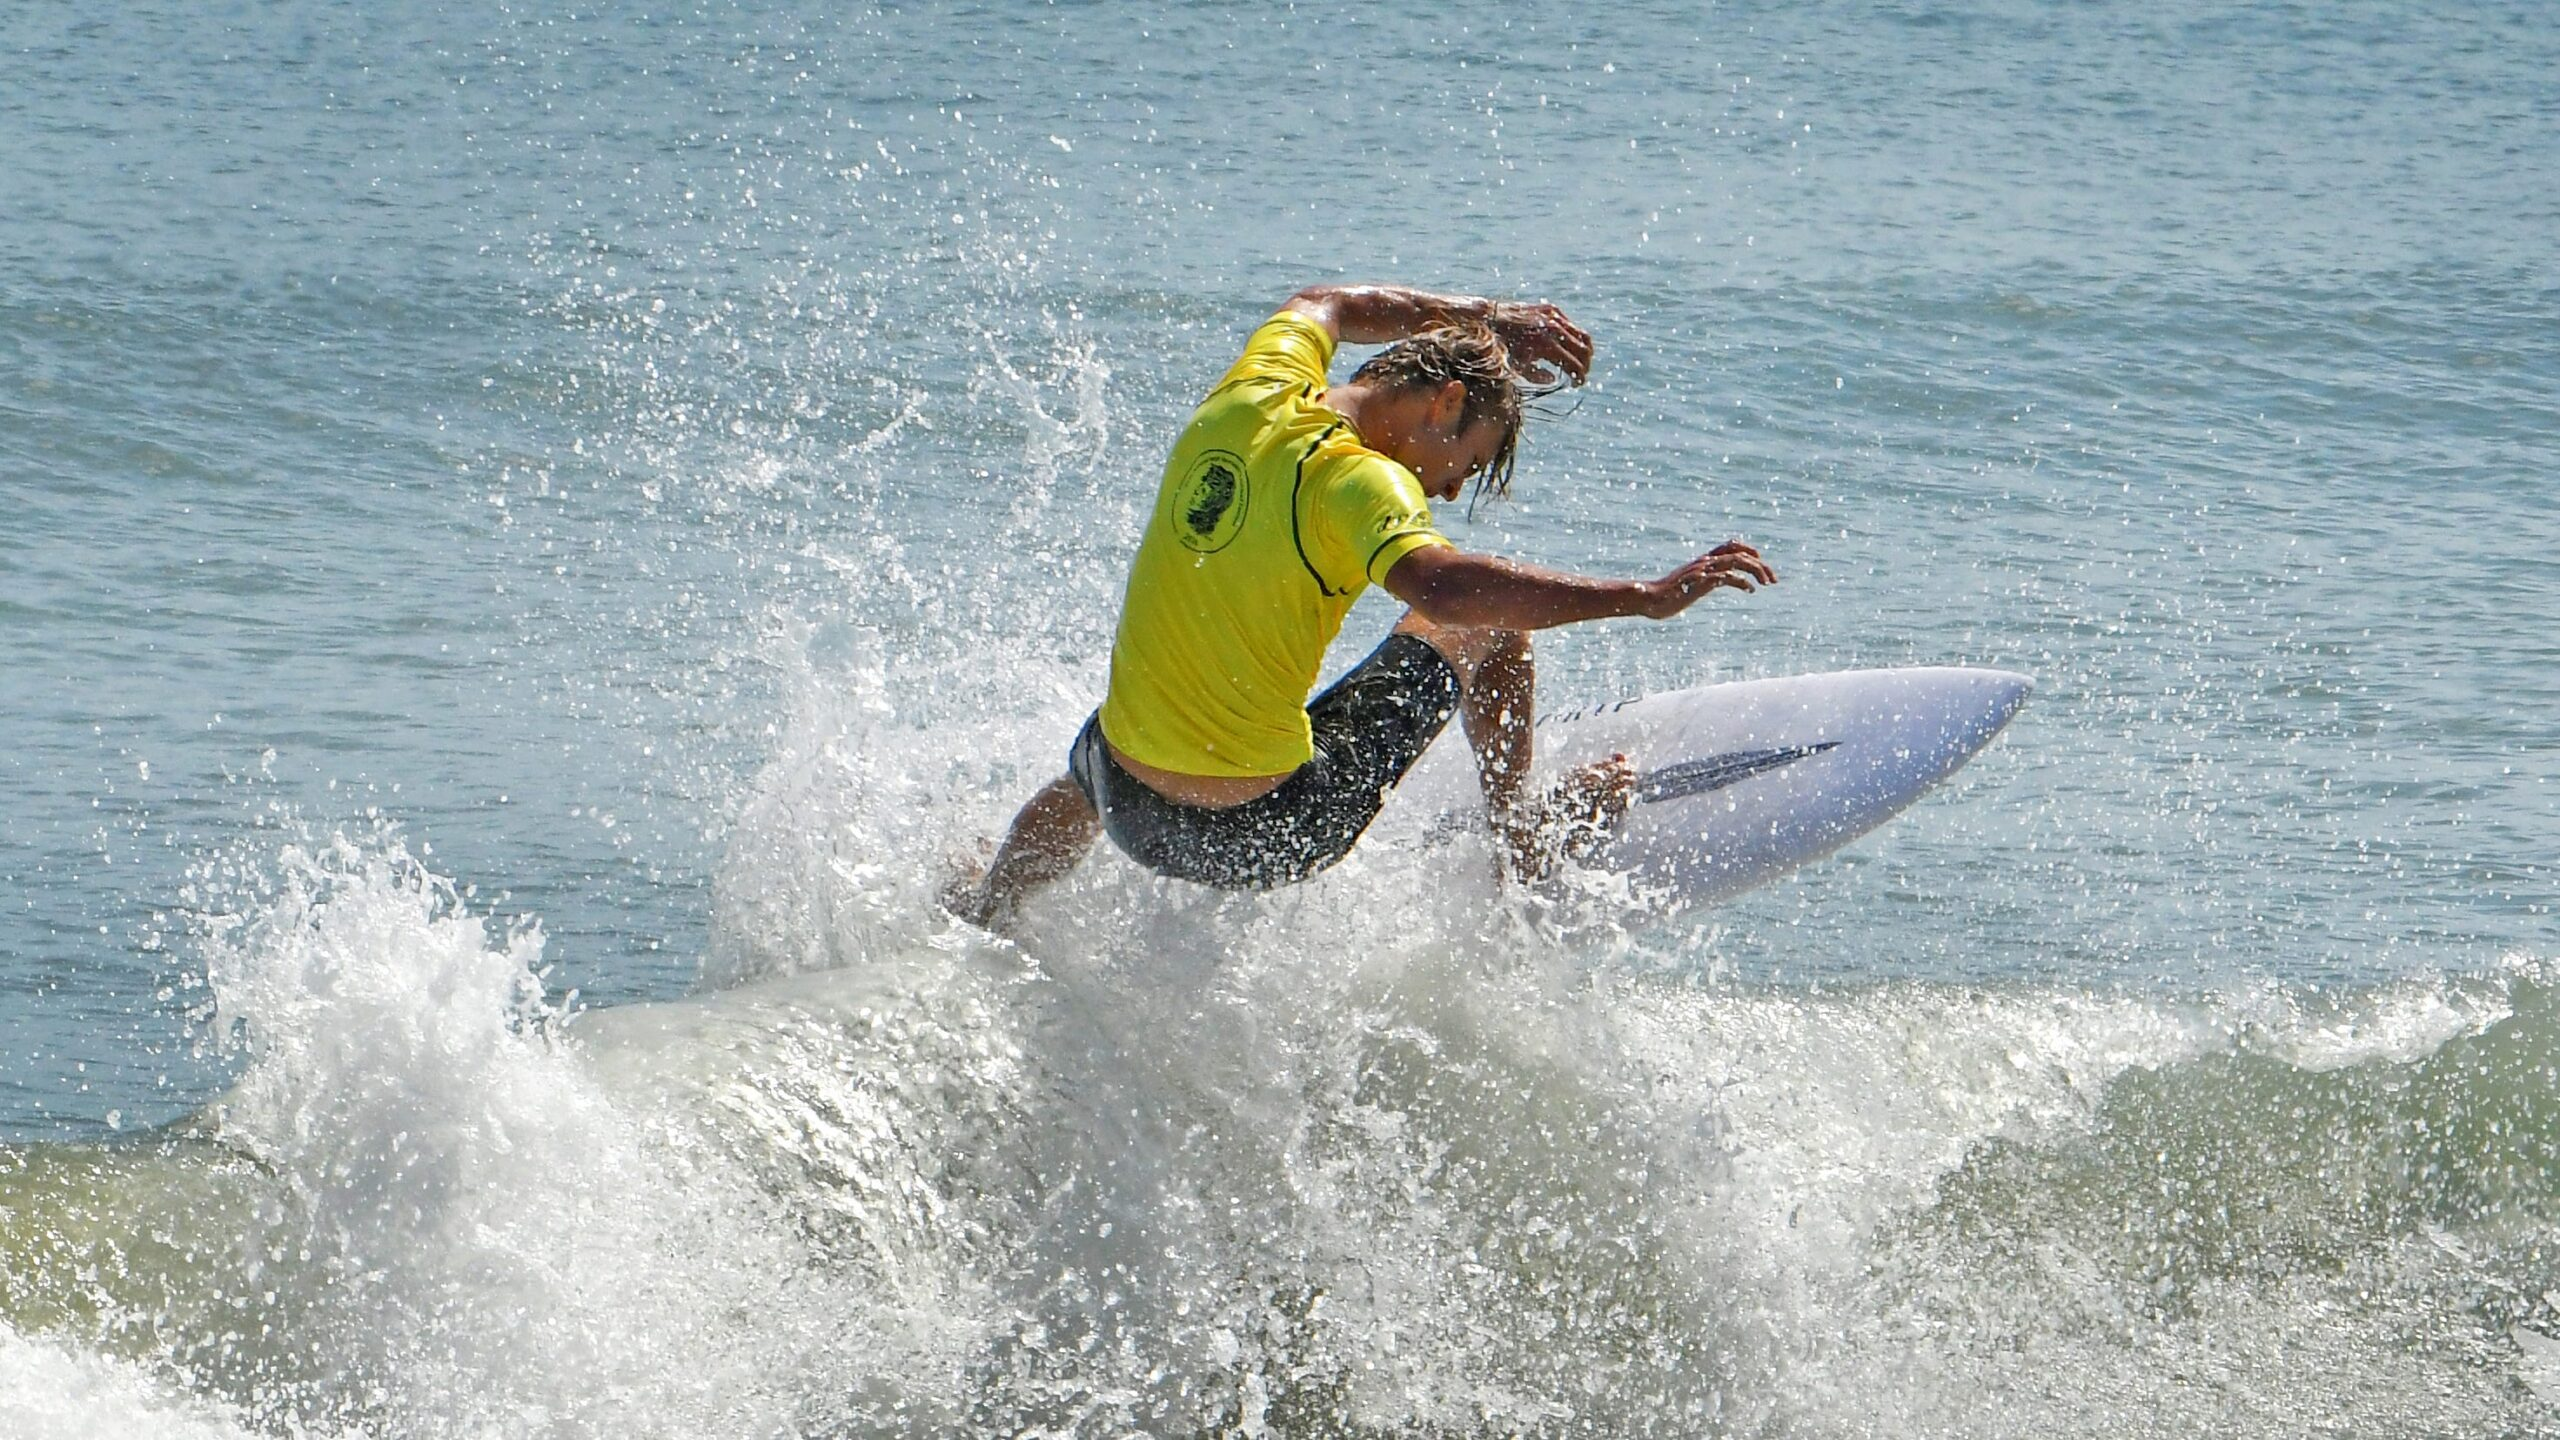 Surfers stoked as sport returns from Cocoa Beach to California; NKF crowns champions – Florida Today